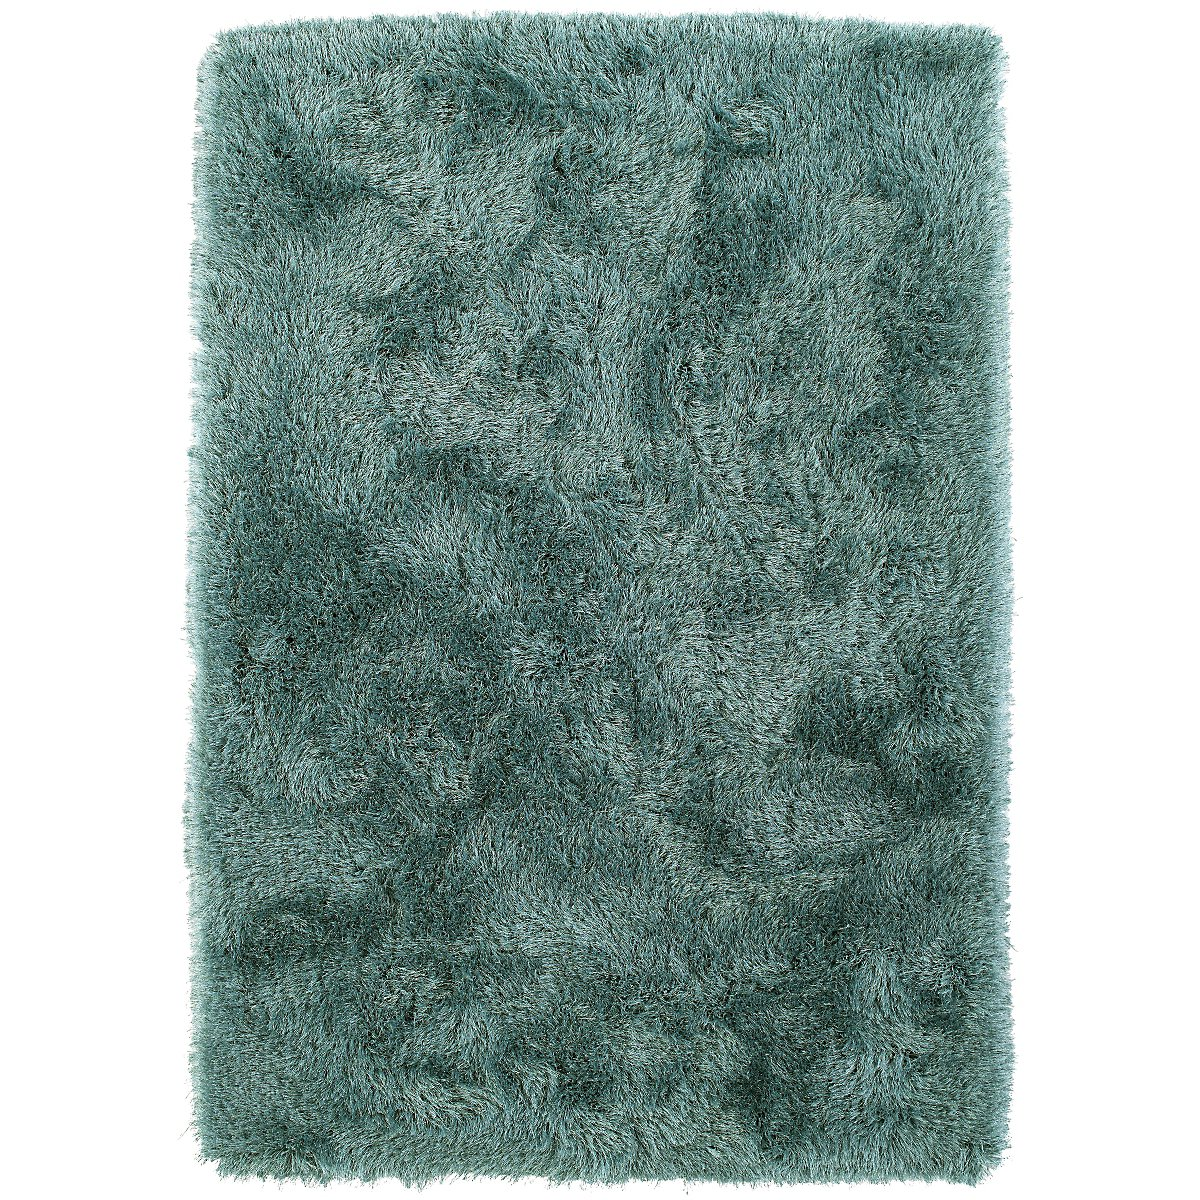 Teal Living Room Rug City Furniture Impact Teal 8x10 Area Rug